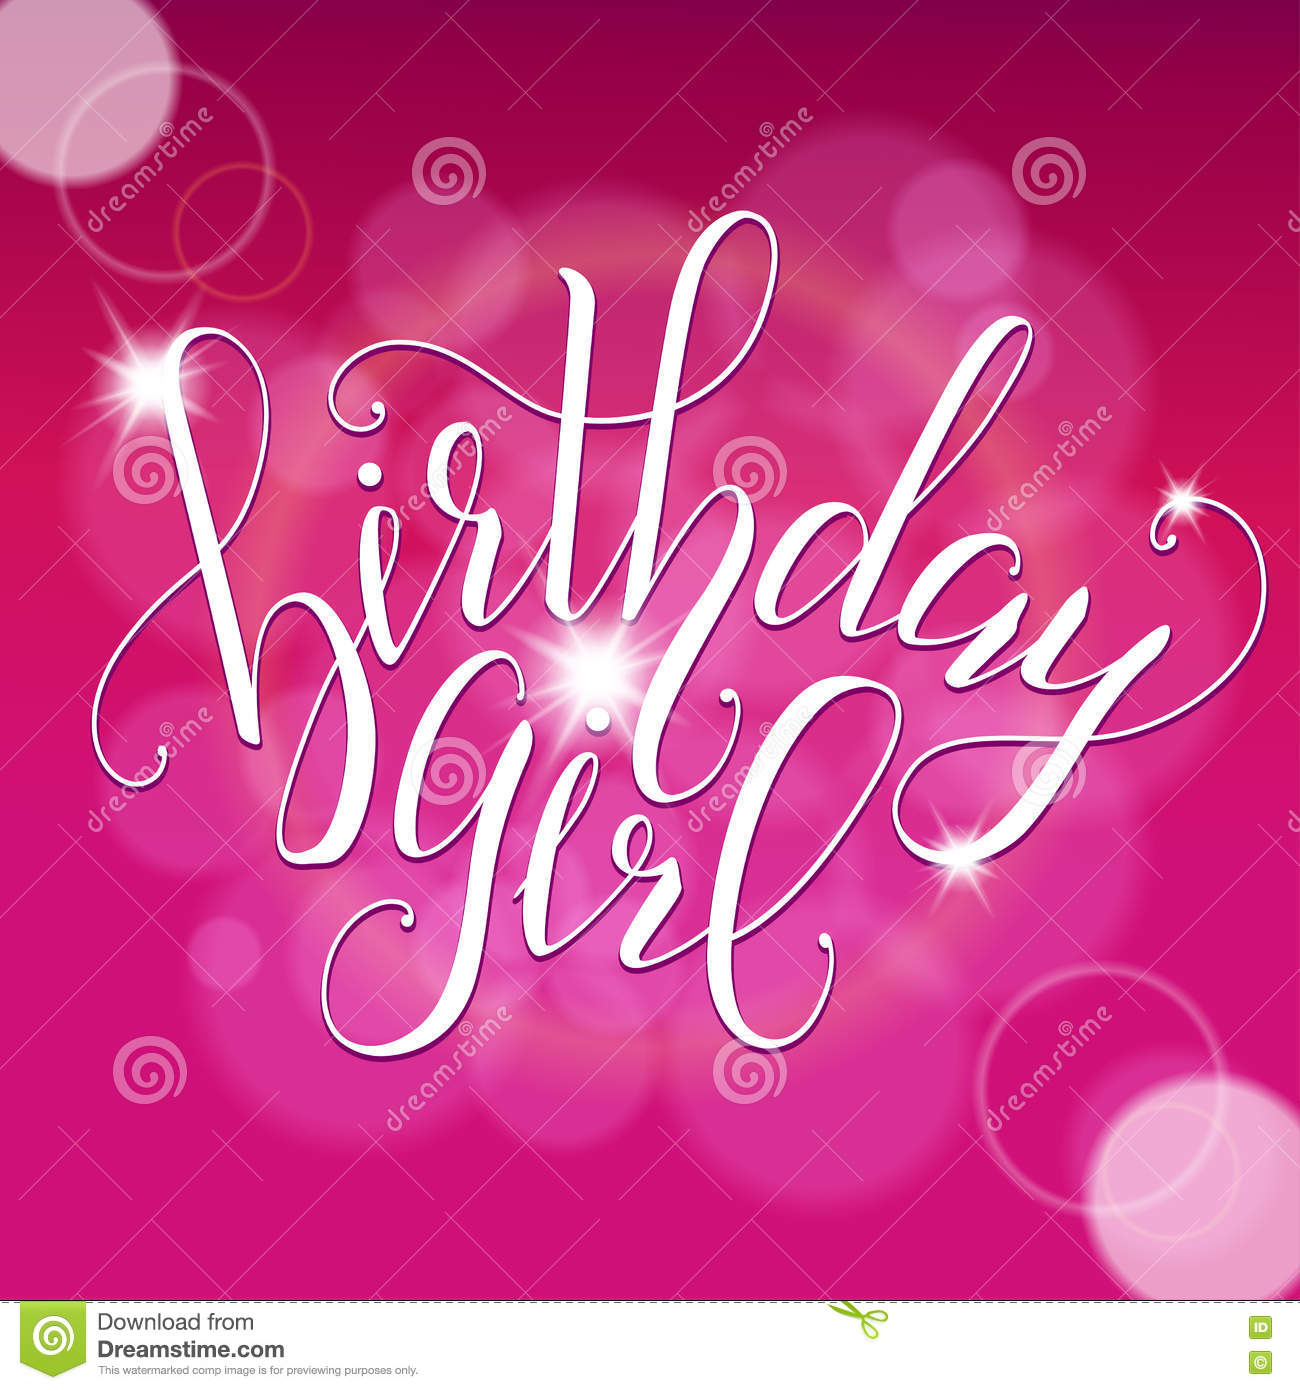 Quotes About A Birthday Girl: Vector Calligraphy Script Quote Birthday Girl. Greeting